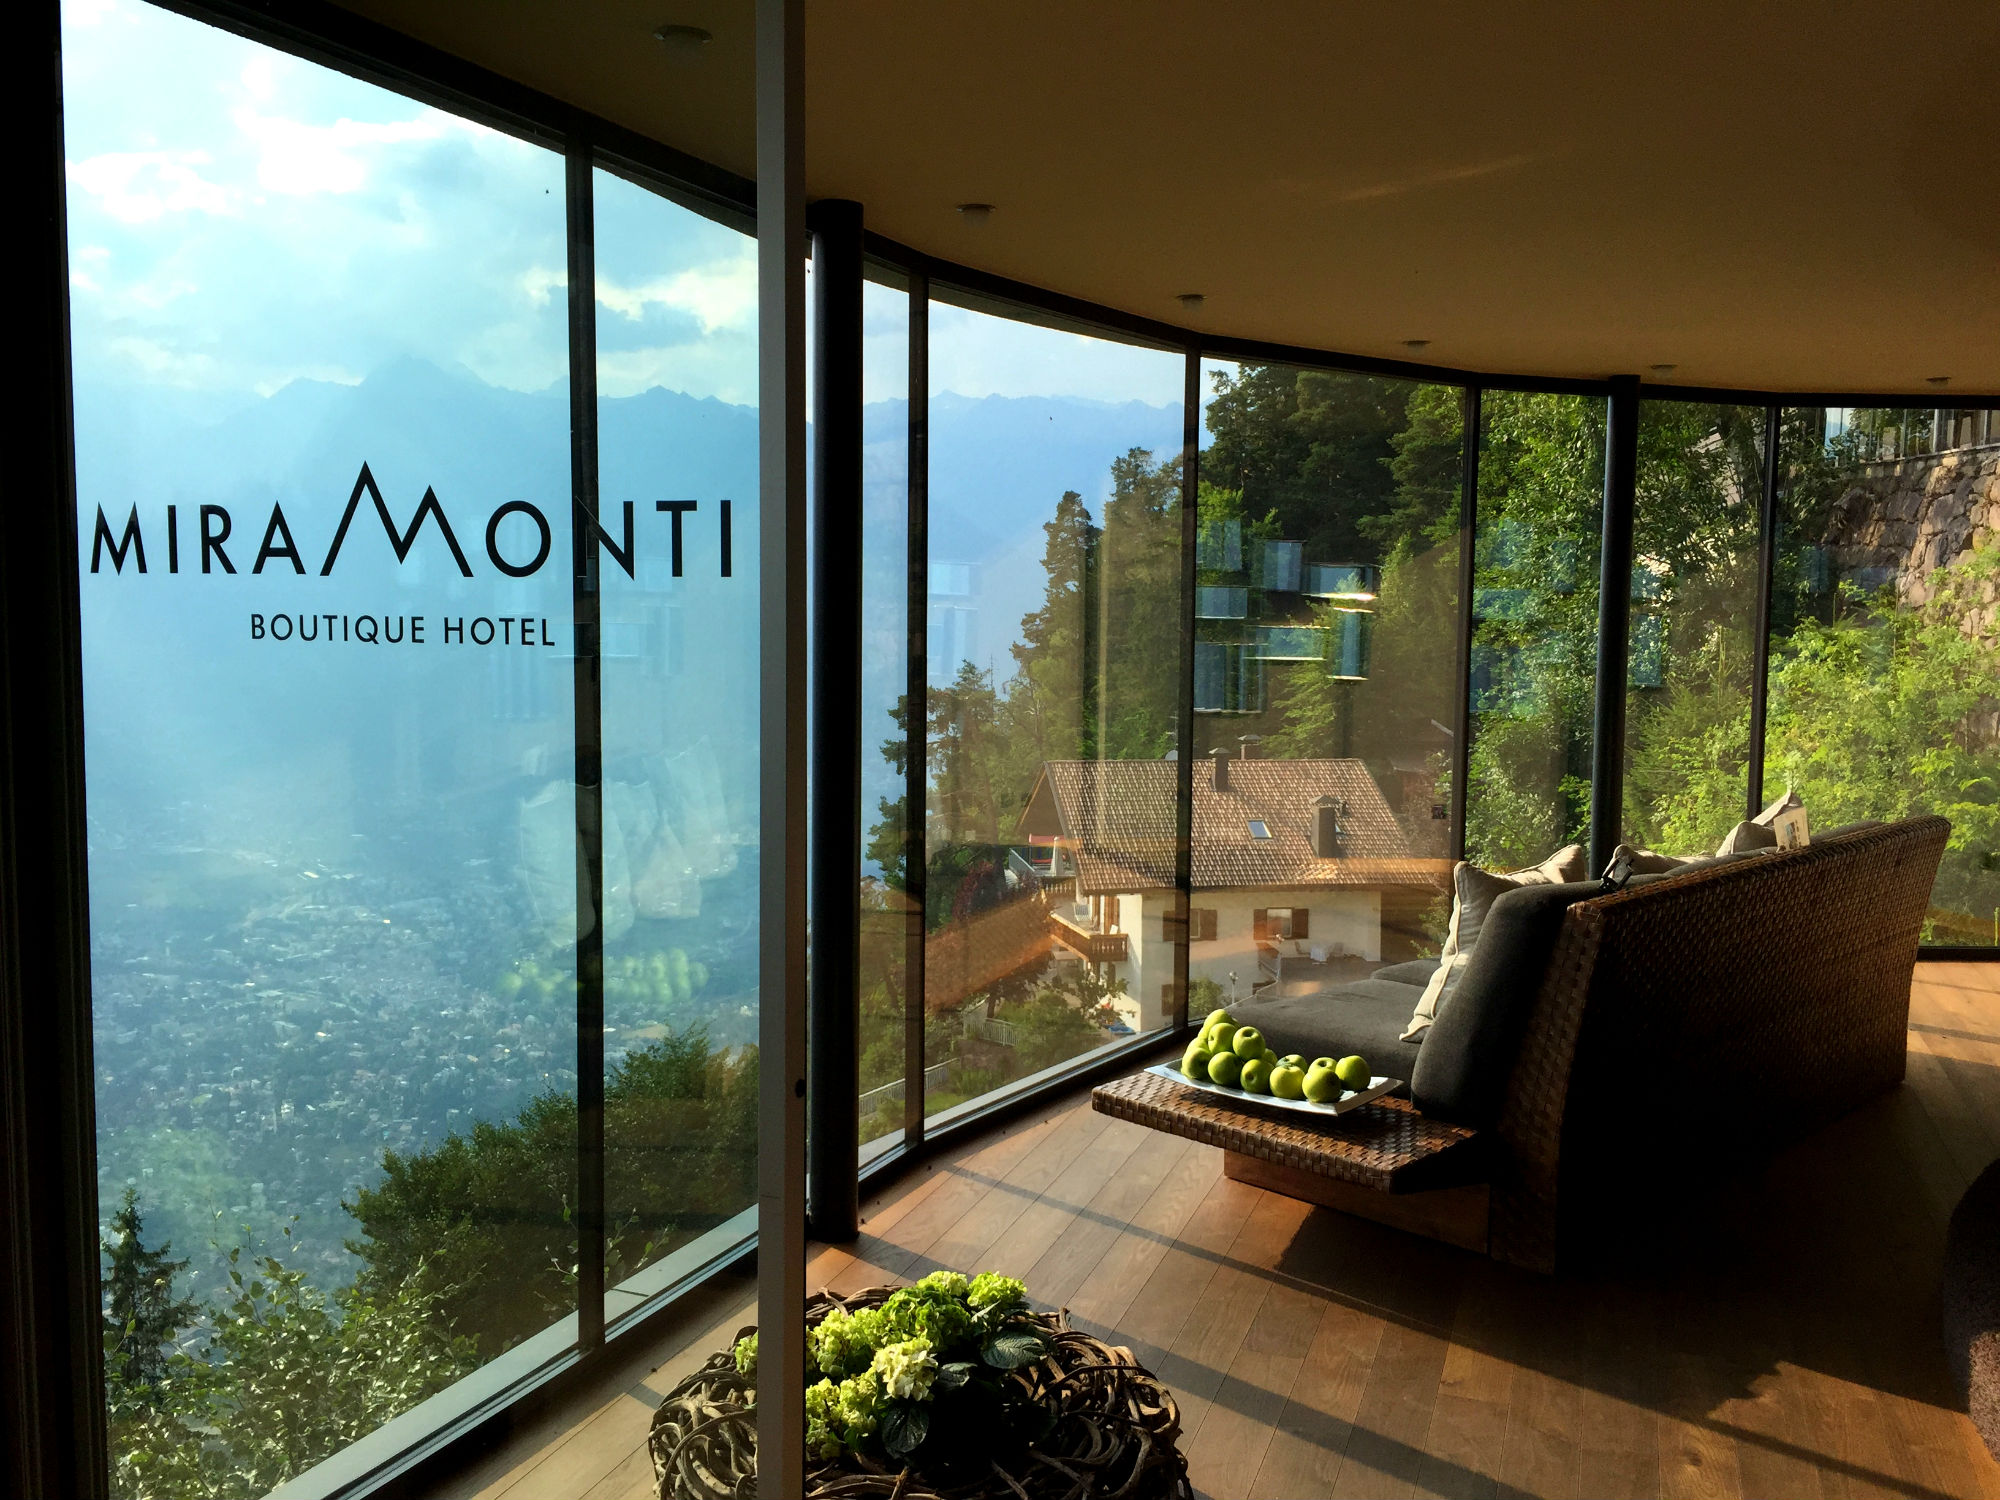 Miramonti boutique hotel in s dtirol hotelreview for Design boutique hotel